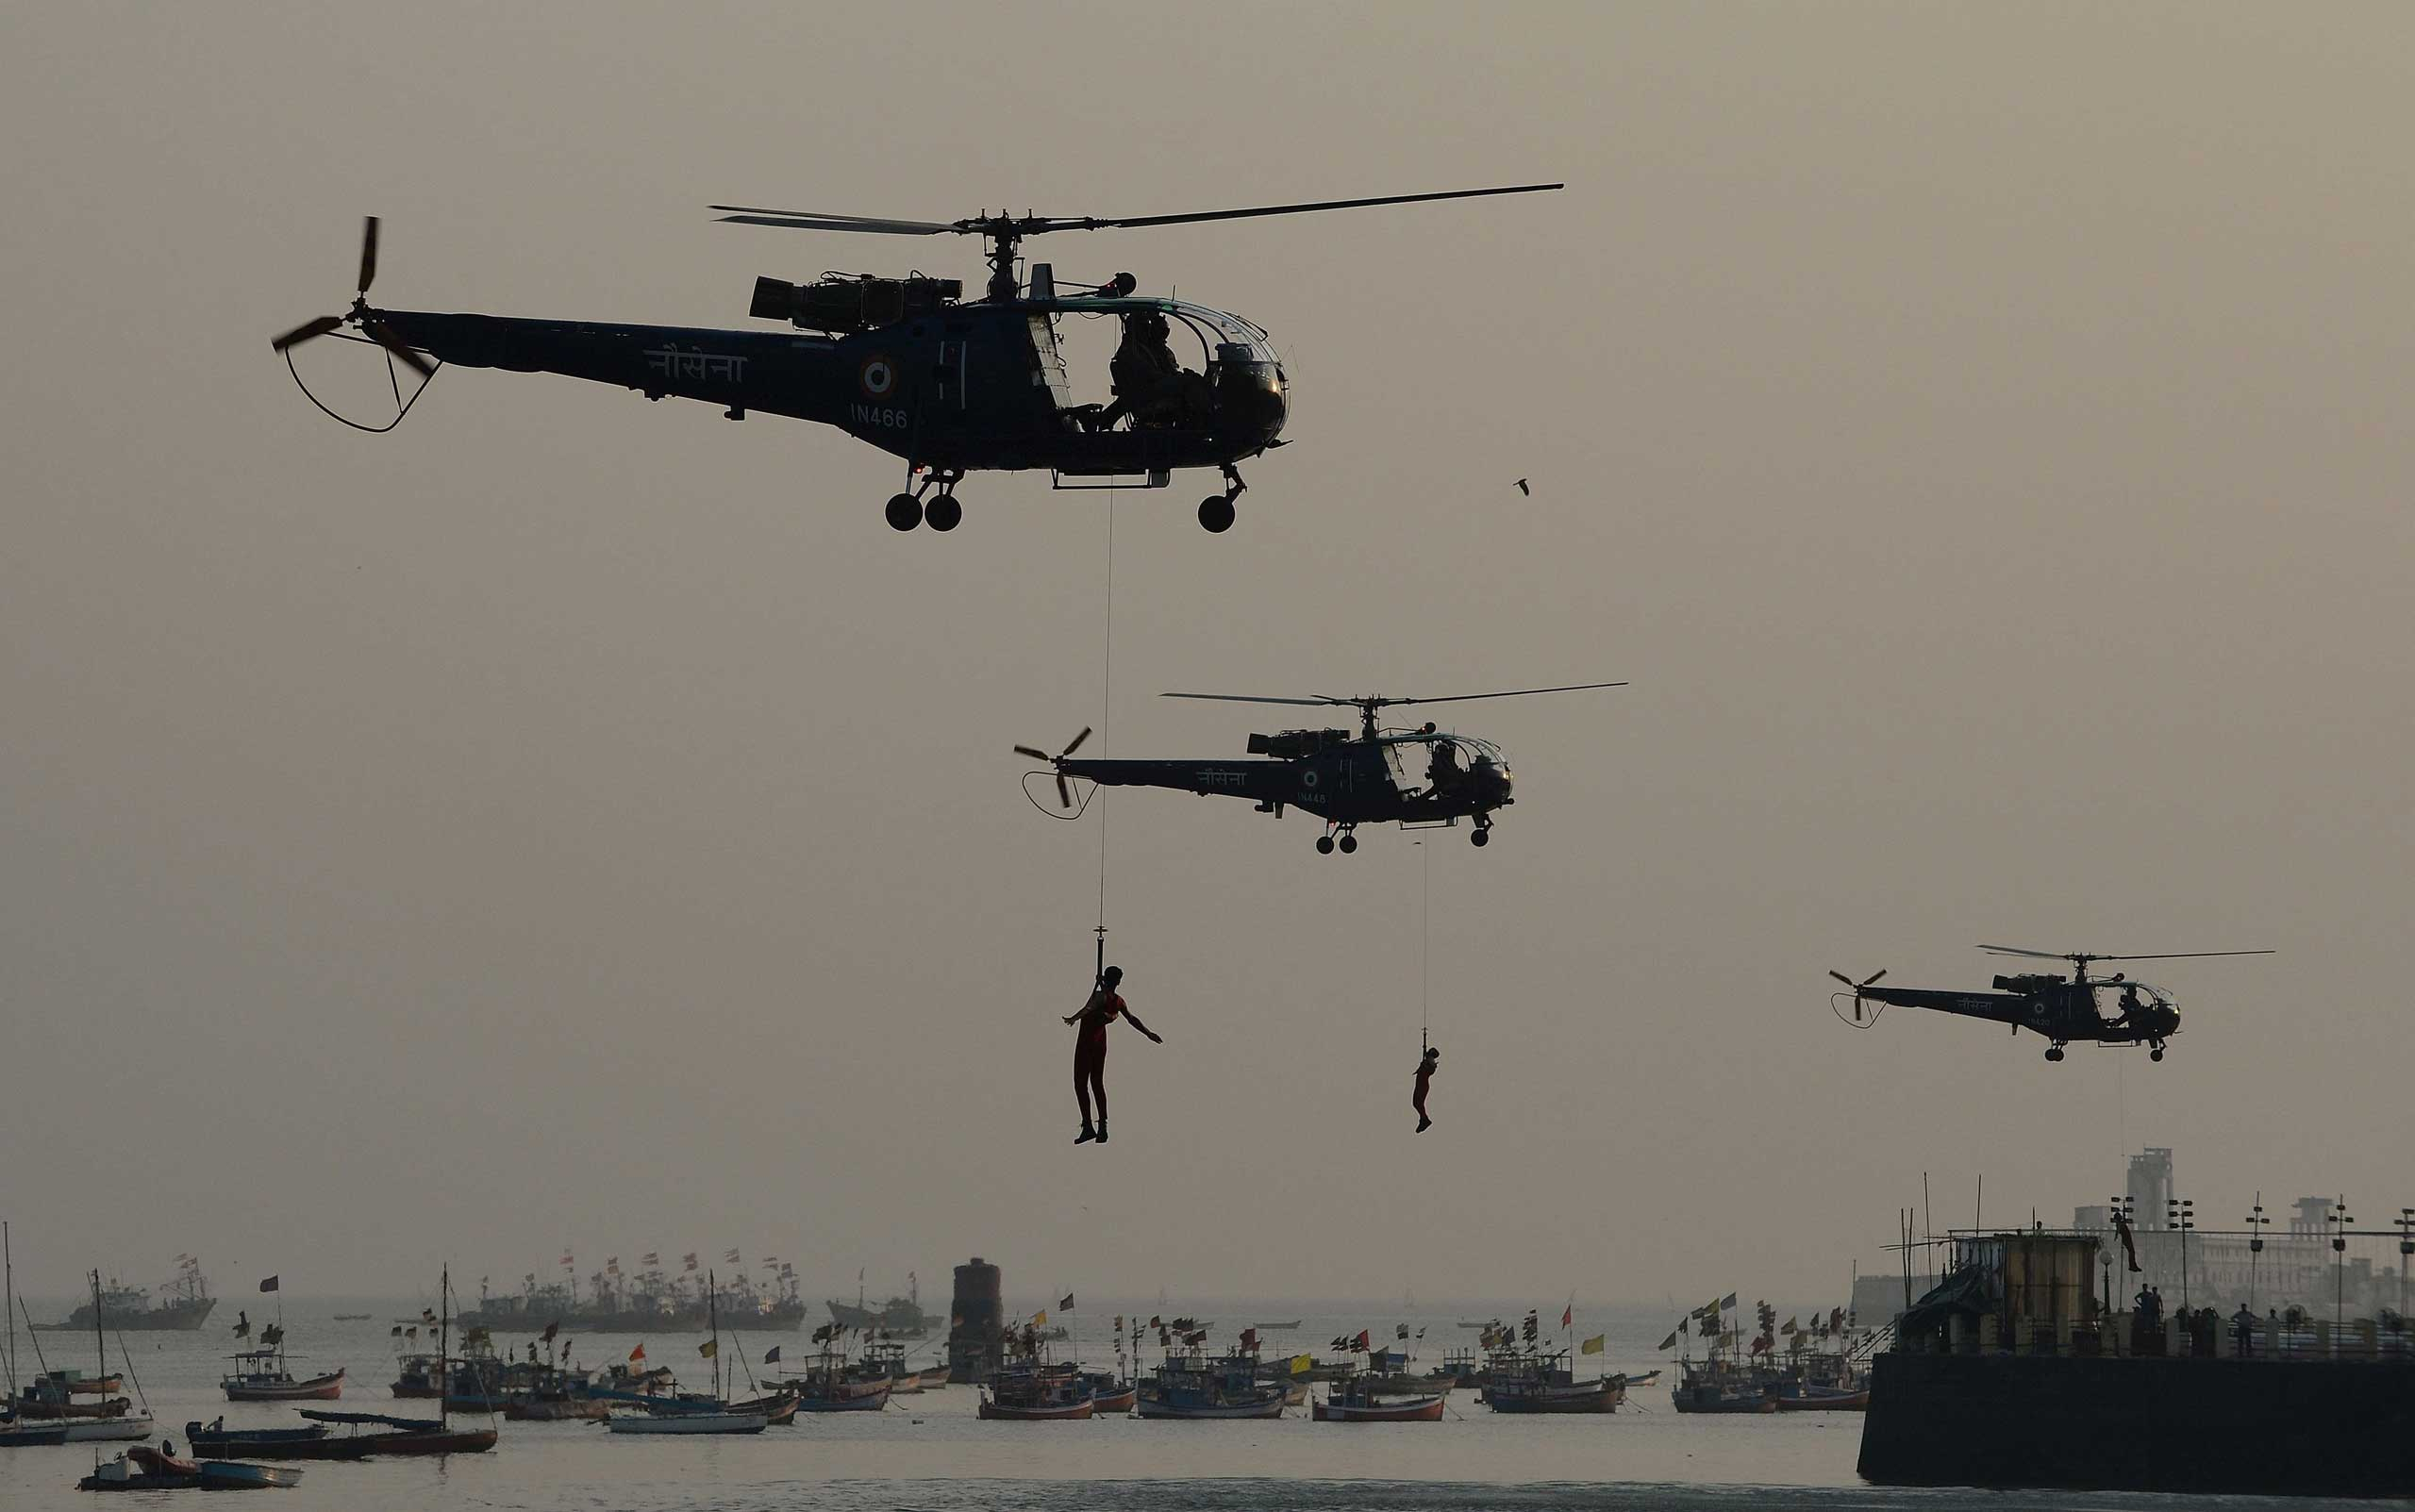 Dec. 2, 2014. Indian navy sailors take part in a rescue demonstration during a rehearsal for the forthcoming Navy Day celebrations in front of the Gateway of India in Mumbai as a tribute to the maritime operations of the Indian Navy during the 1971 Indo-Pakistan war.